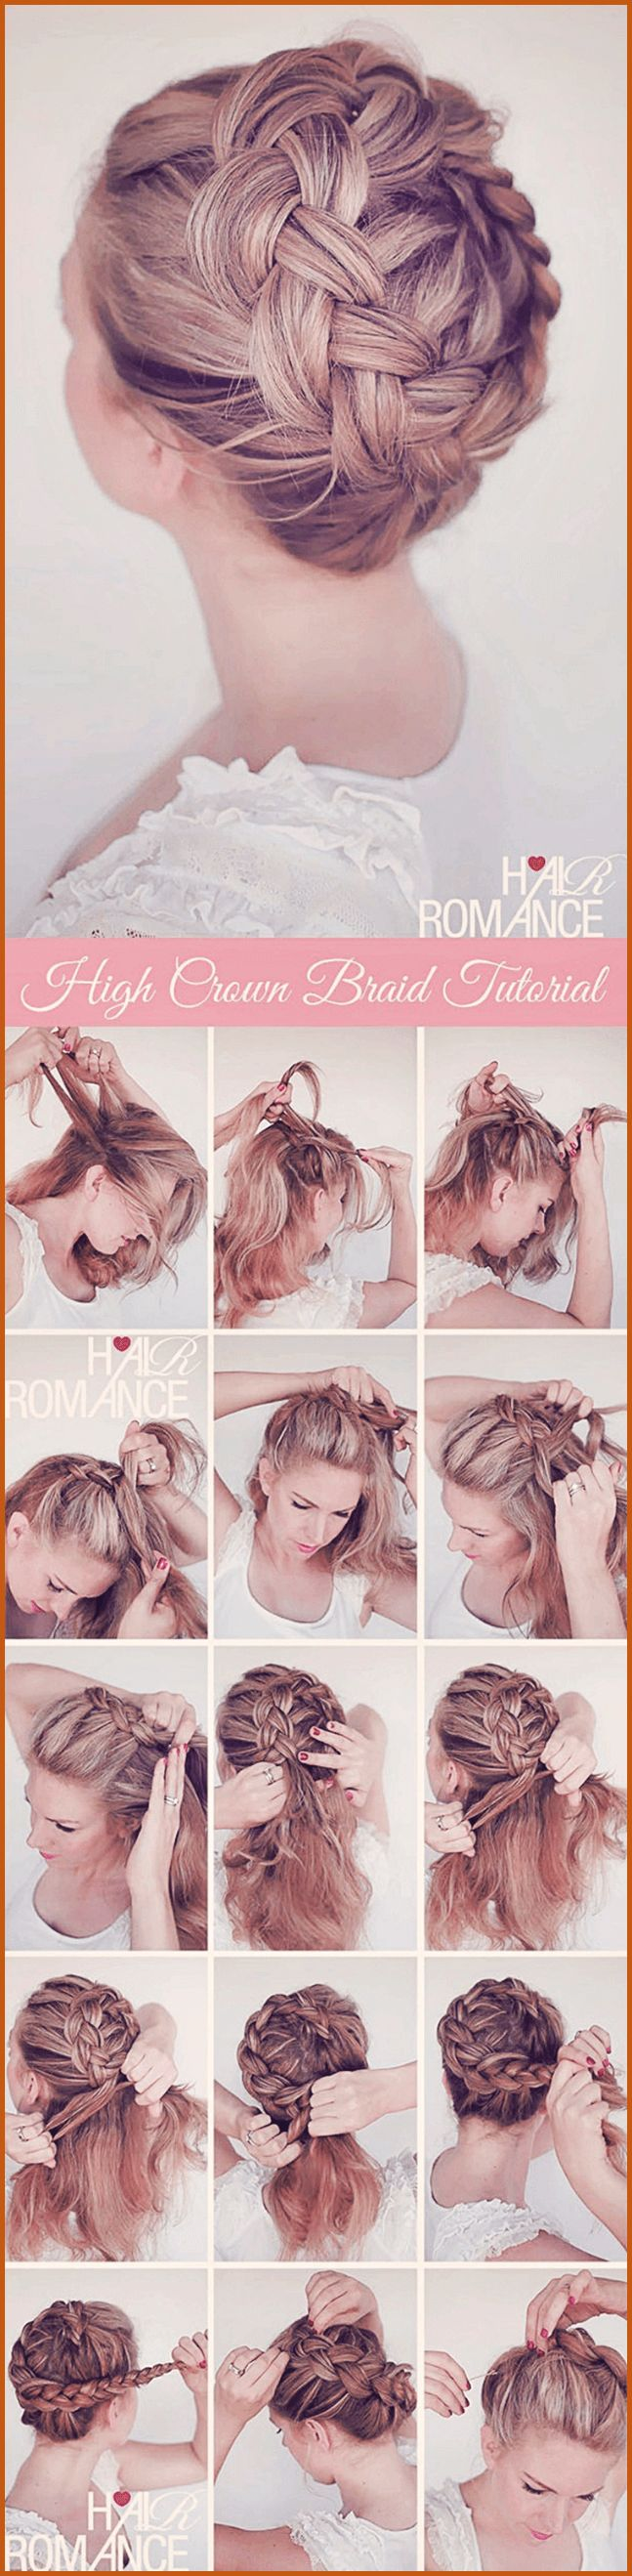 Model illustrates how to get the high crown braid